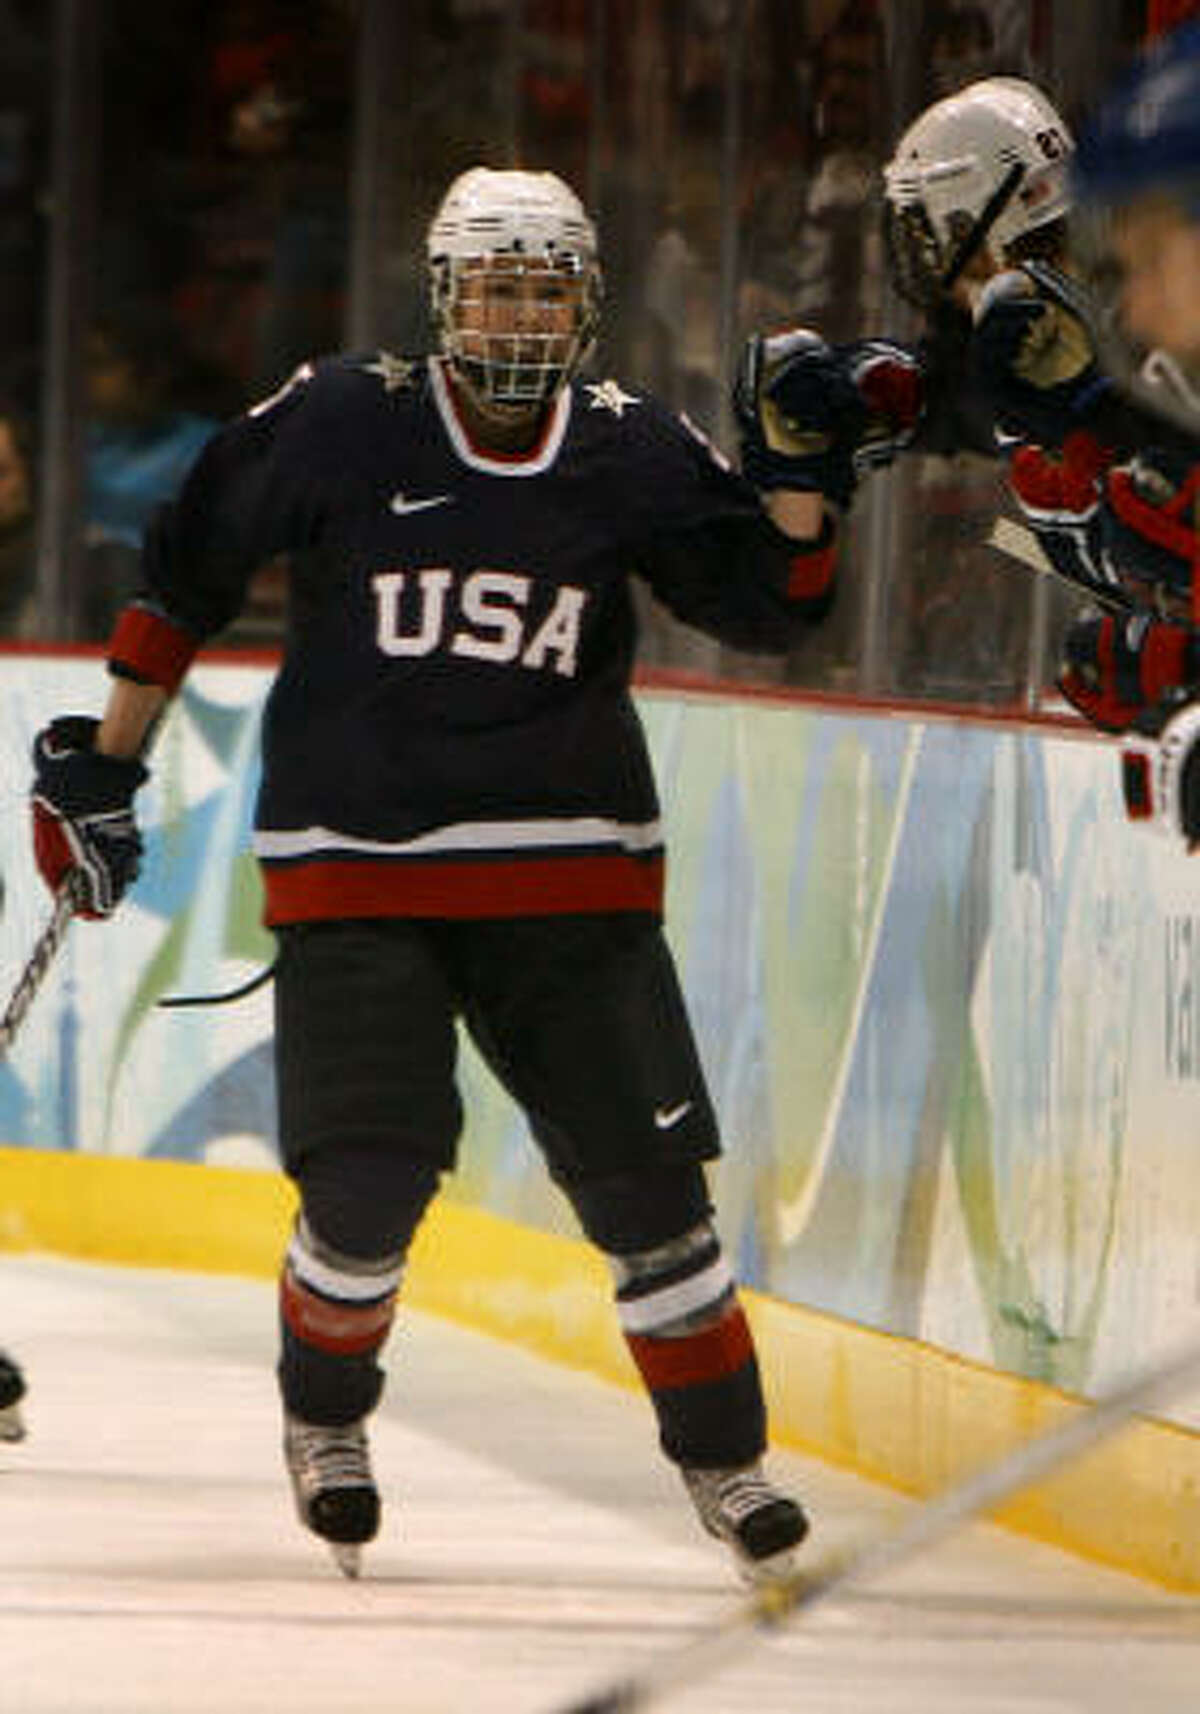 Karen Thatcher of the United States skates back to the bench after scoring a goal.